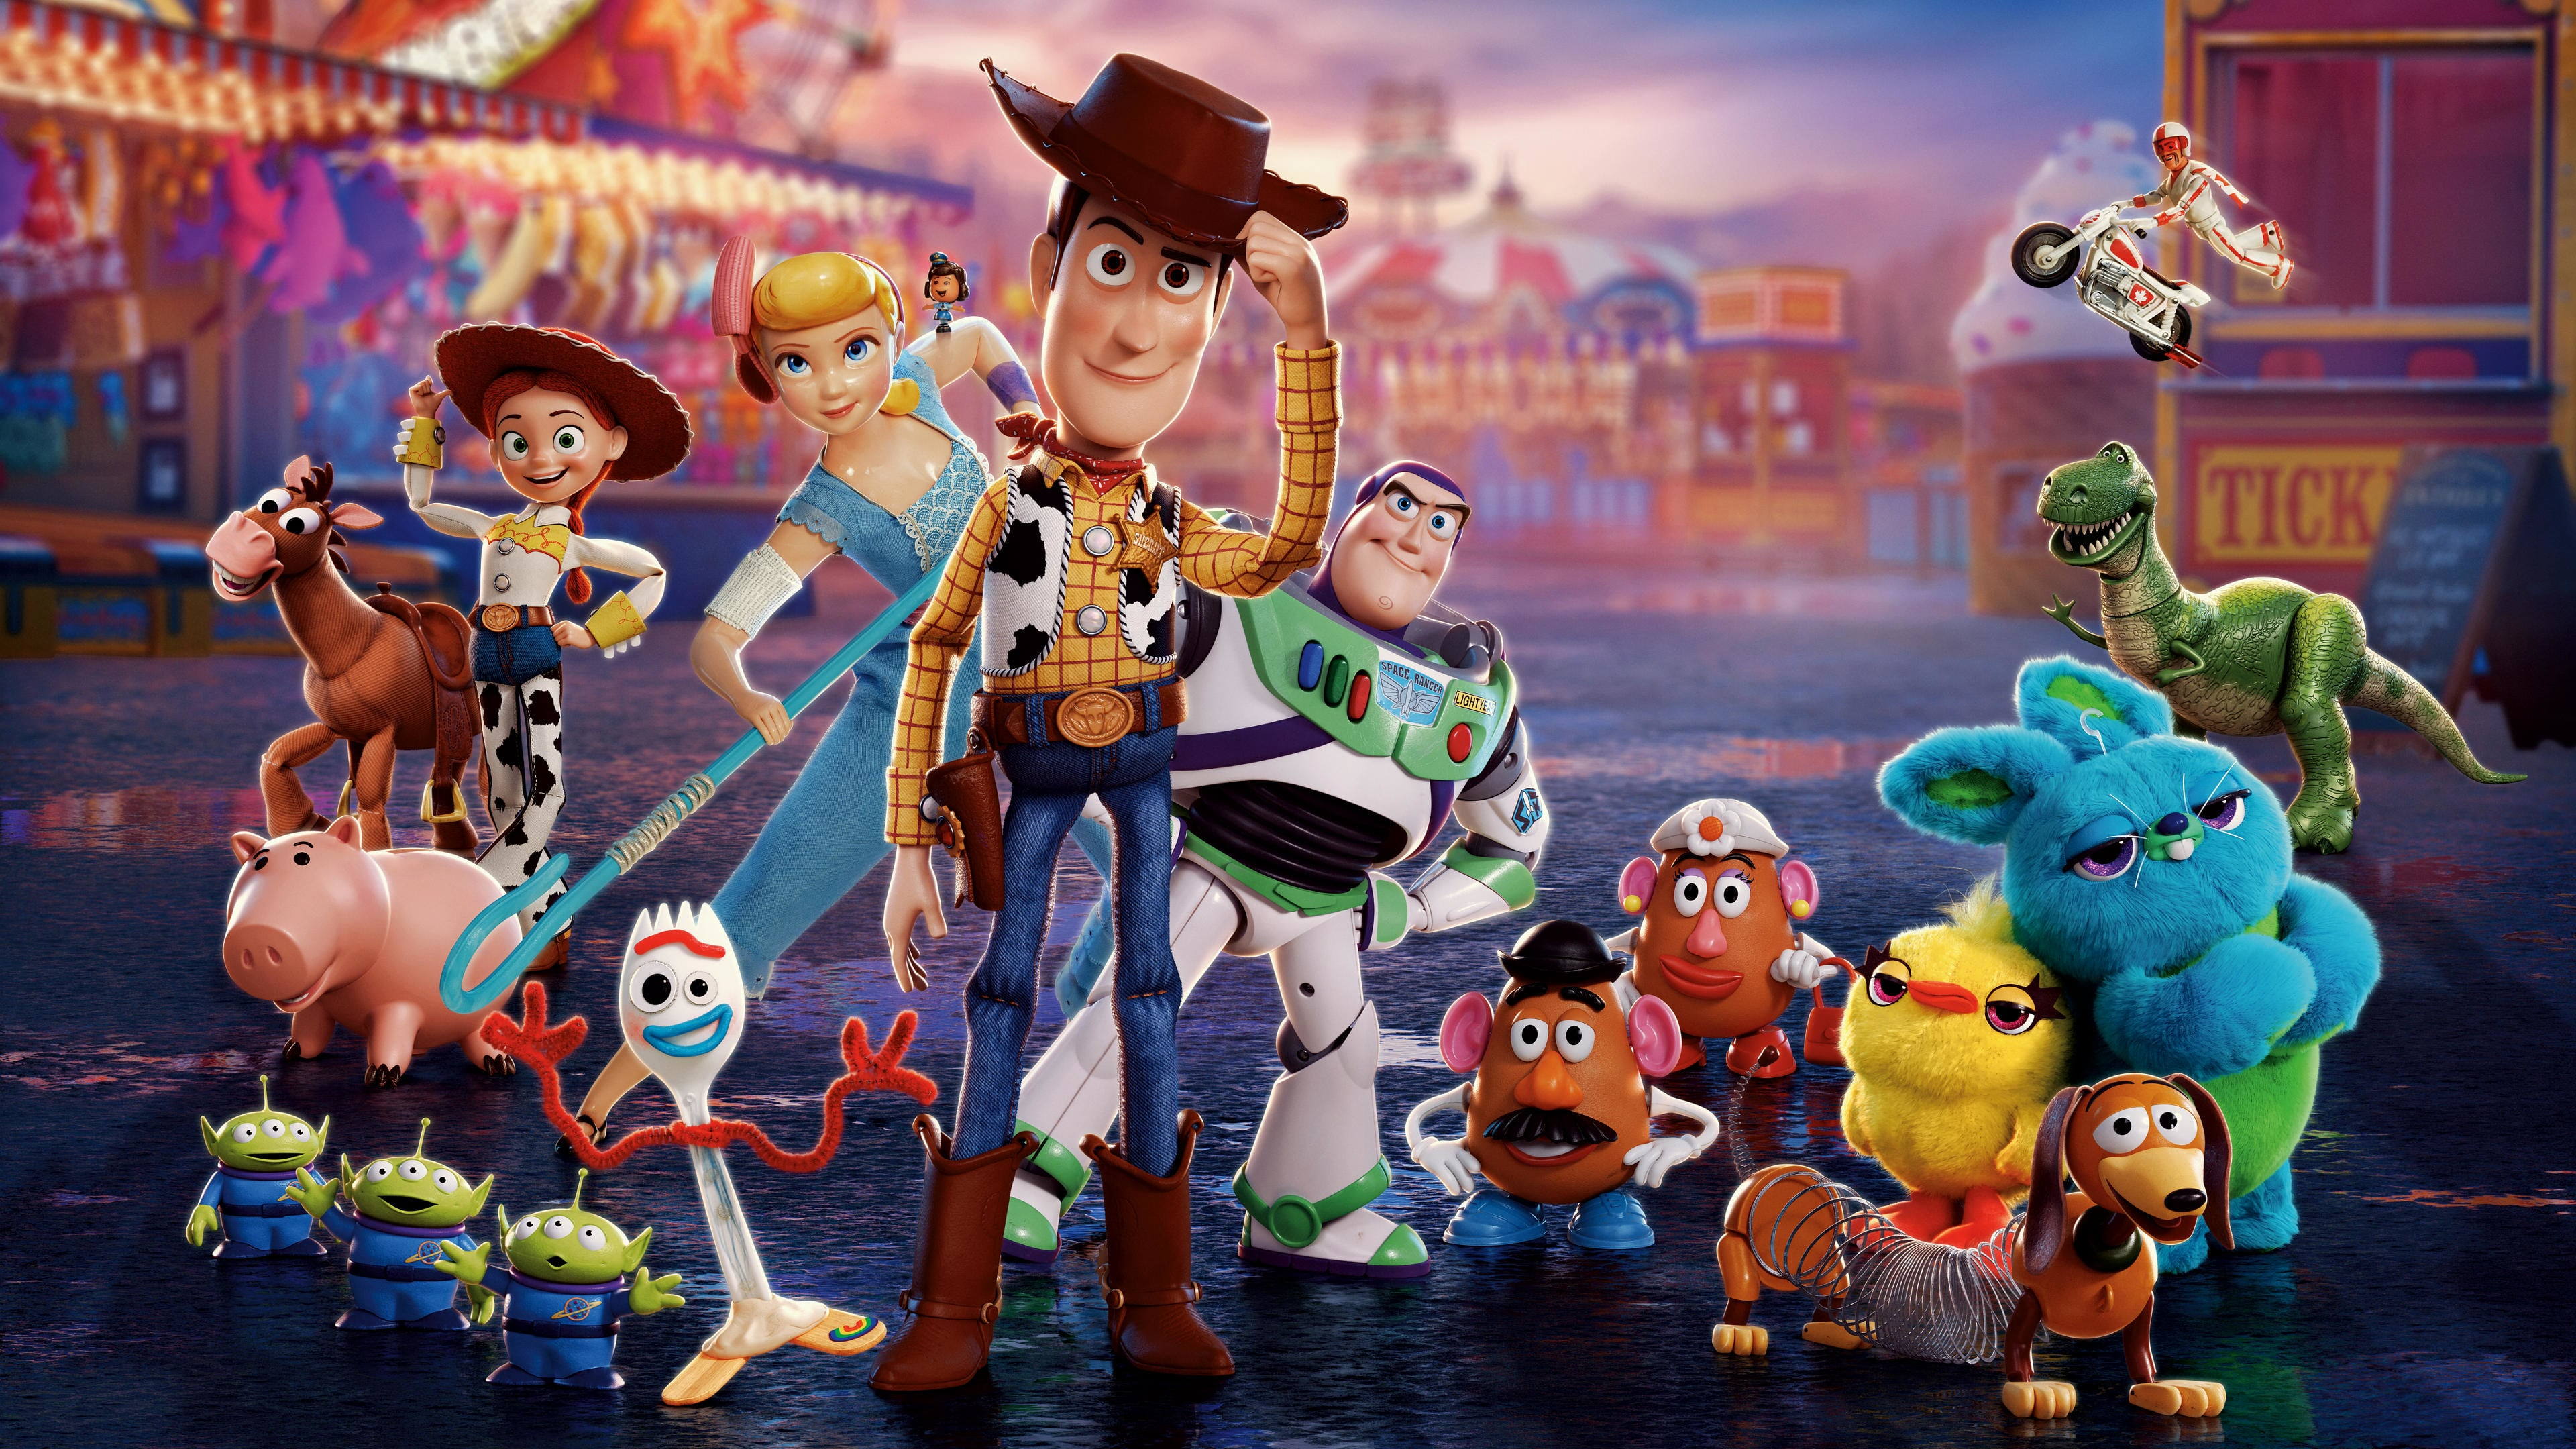 Toy Story 4 Characters Poster Wallpaper 4k Ultra HD ID3326 3840x2160